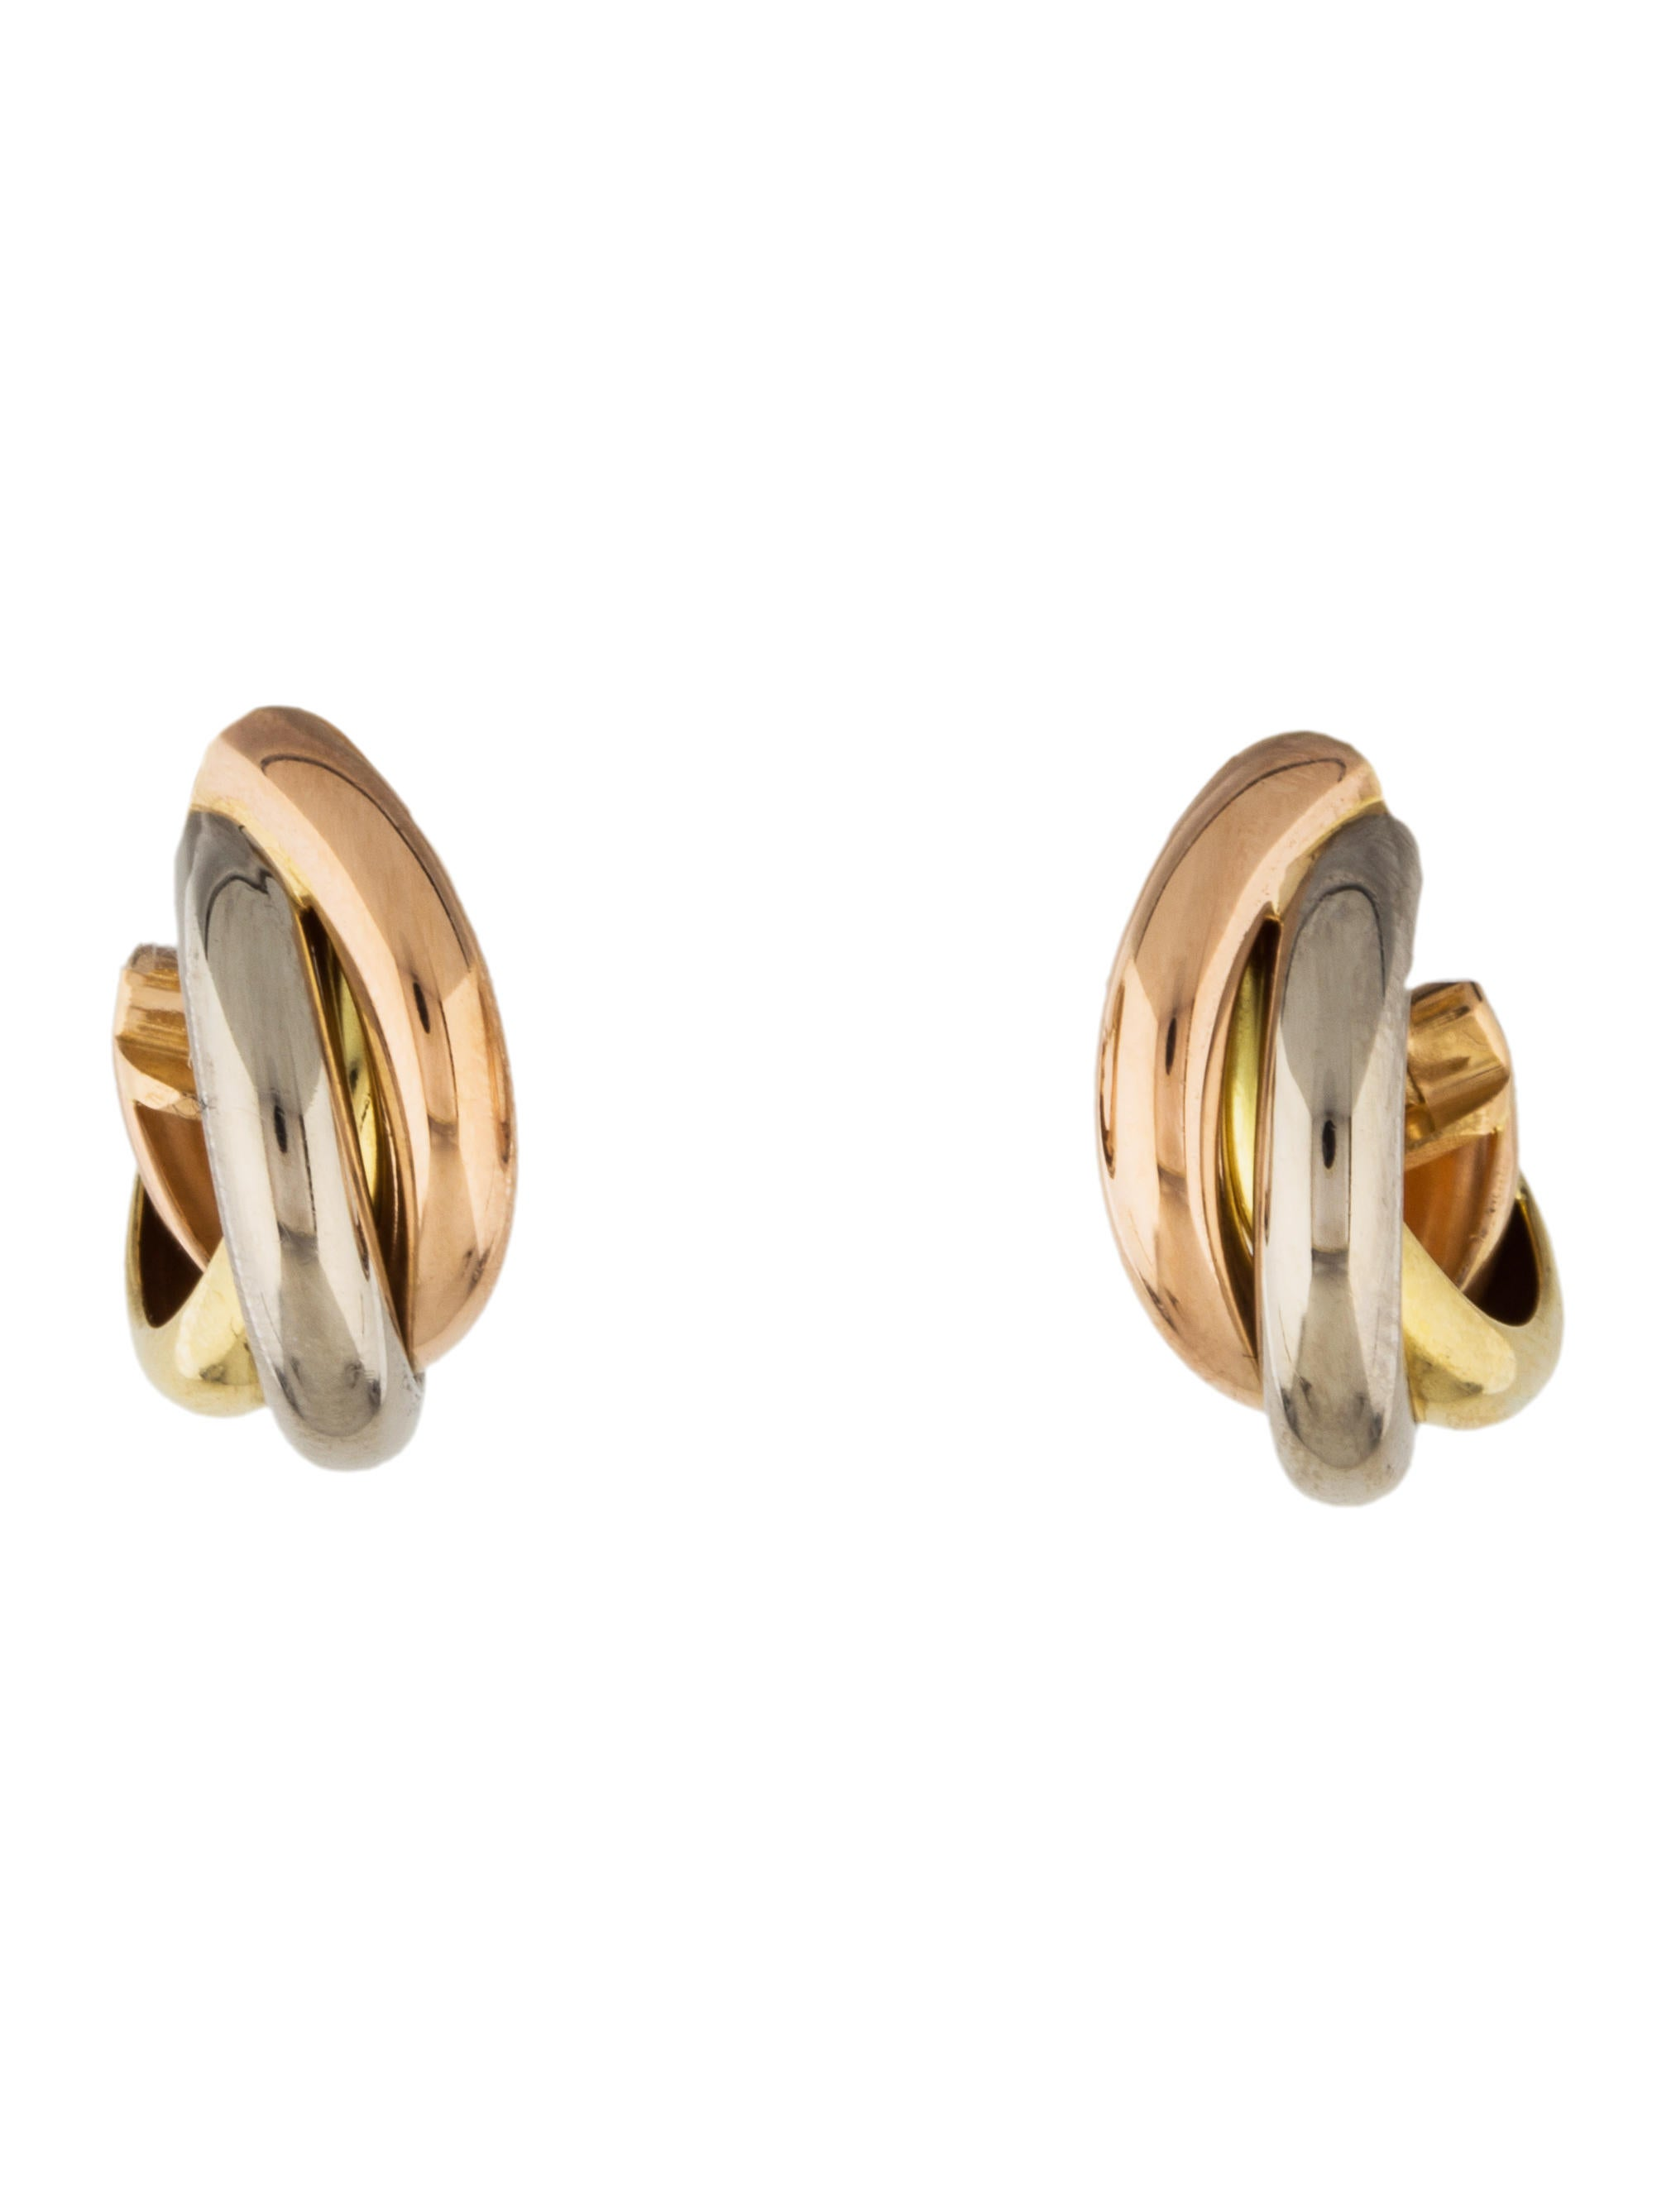 trinity cartier earring de luxe woman ref photo jewellery b gold earrings golden instant pink